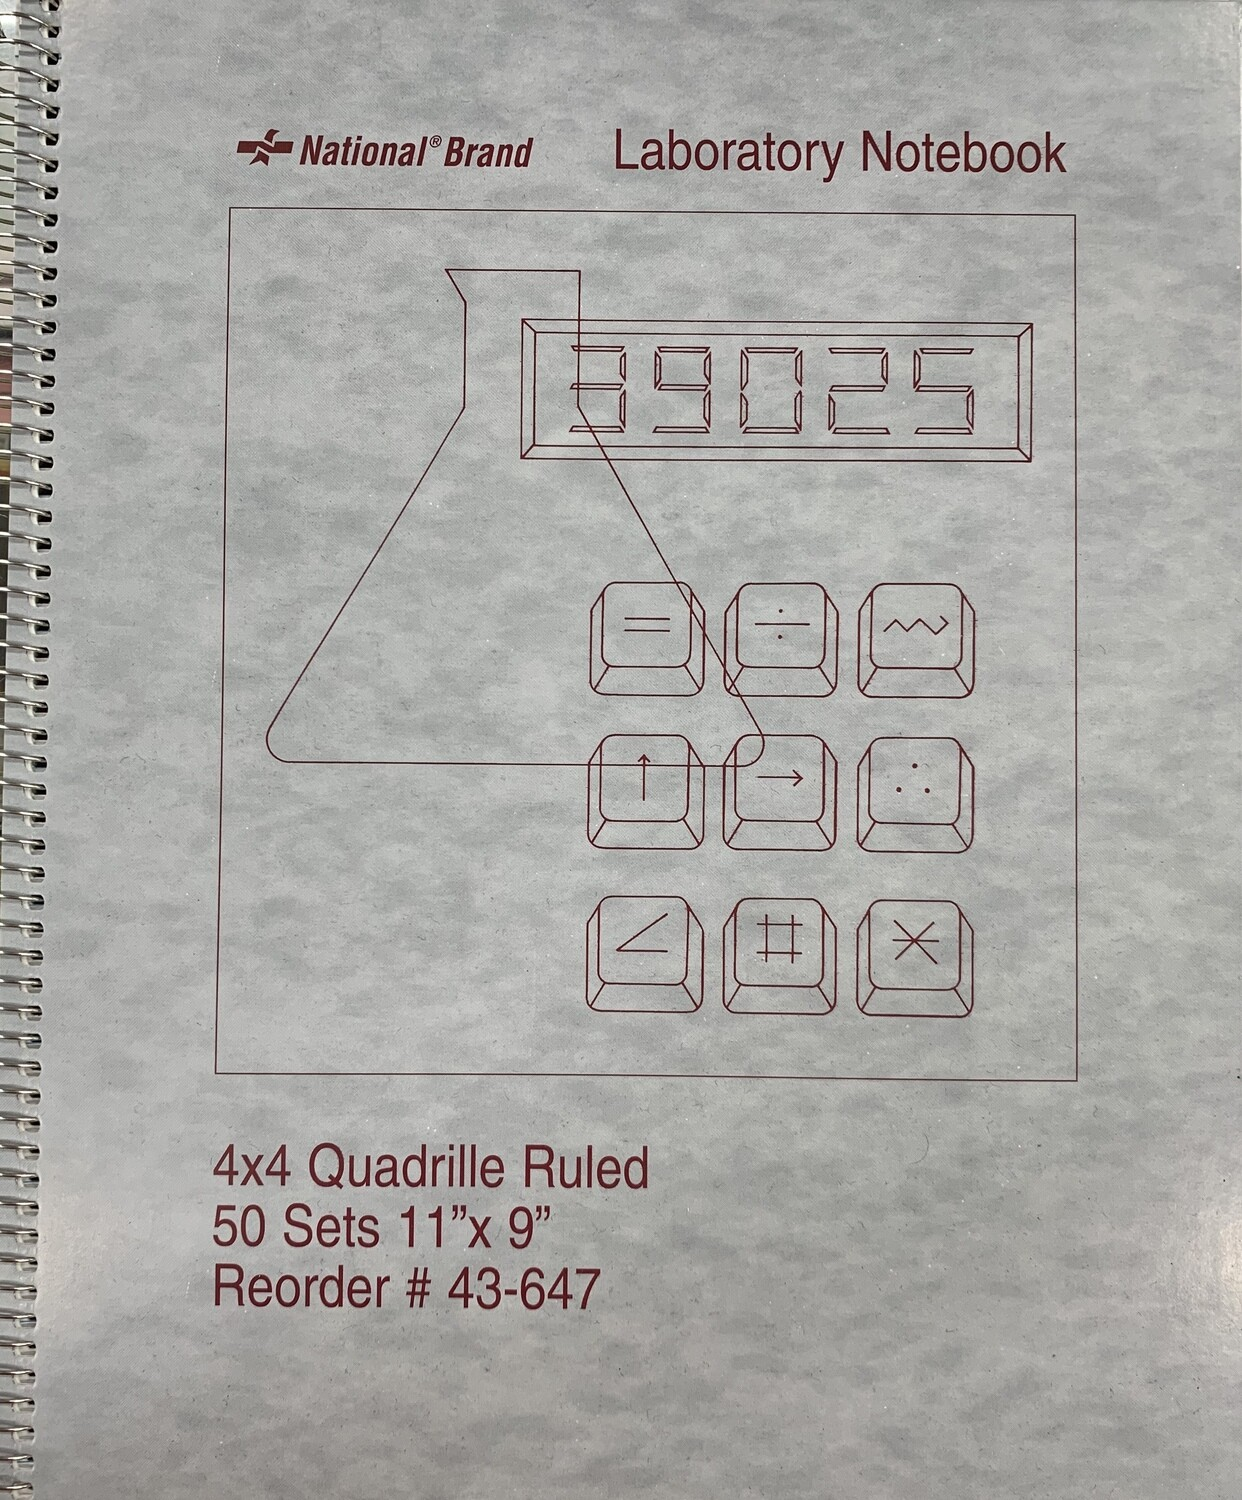 Laboratory Notebook (50 sets)